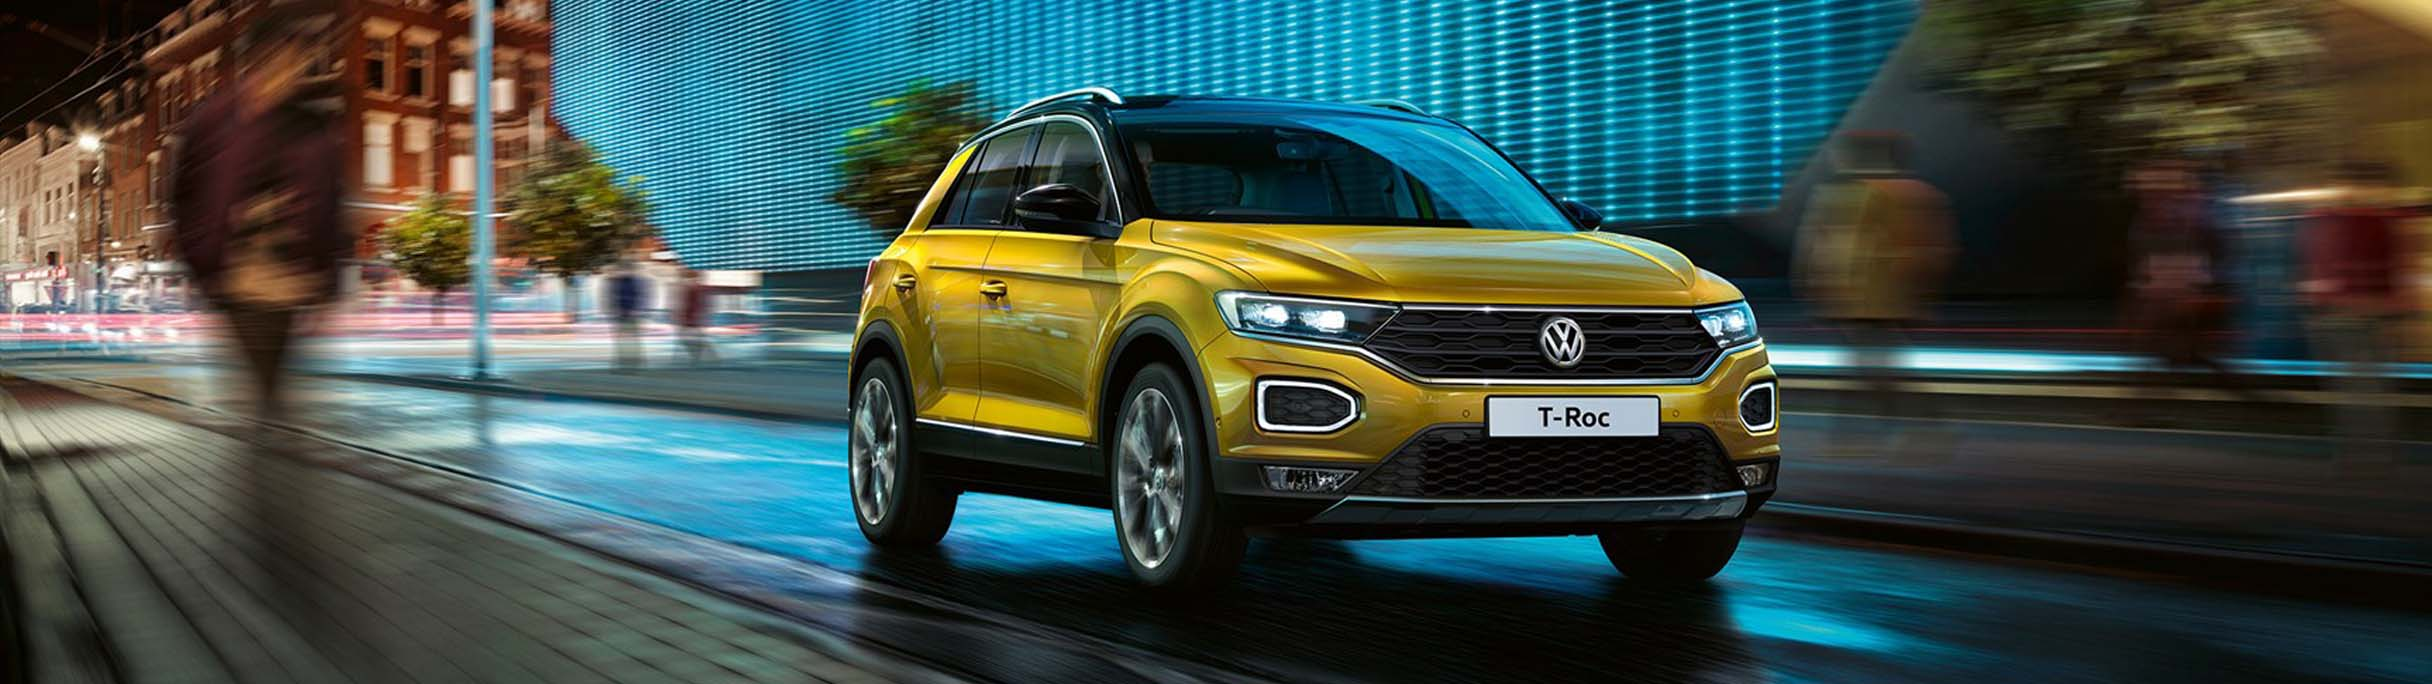 Pre-ordering the VW T-Roc at Barons Bruma